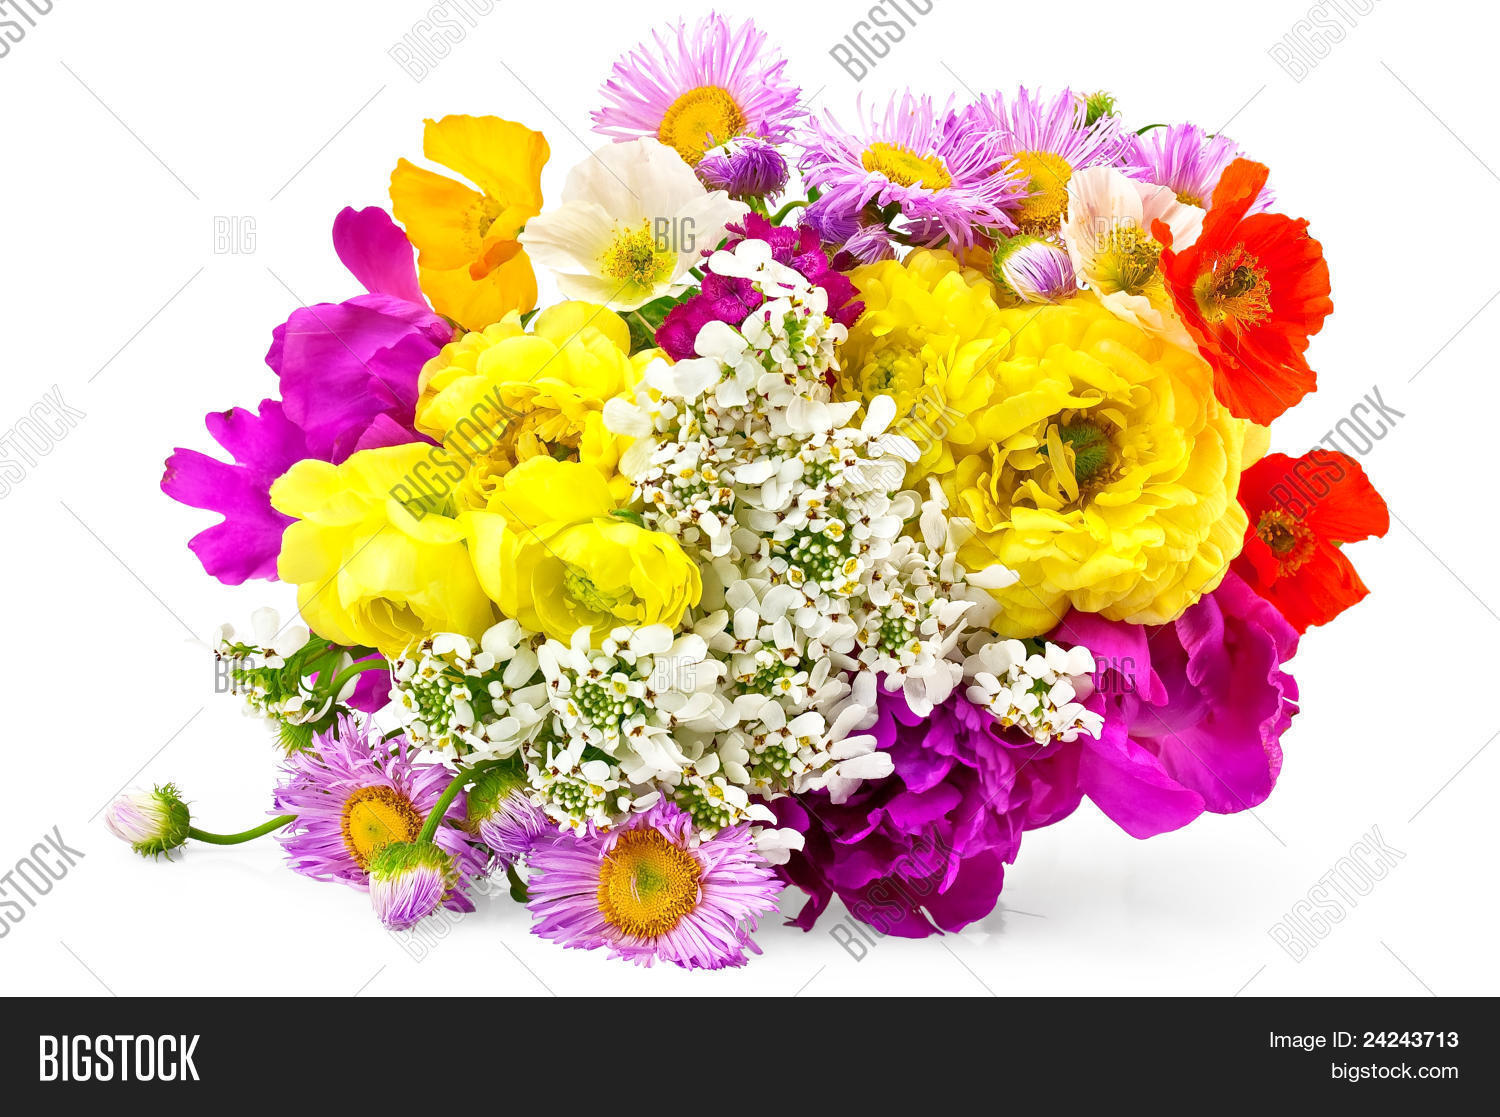 Bouquet different image photo free trial bigstock bouquet of different flowers izmirmasajfo